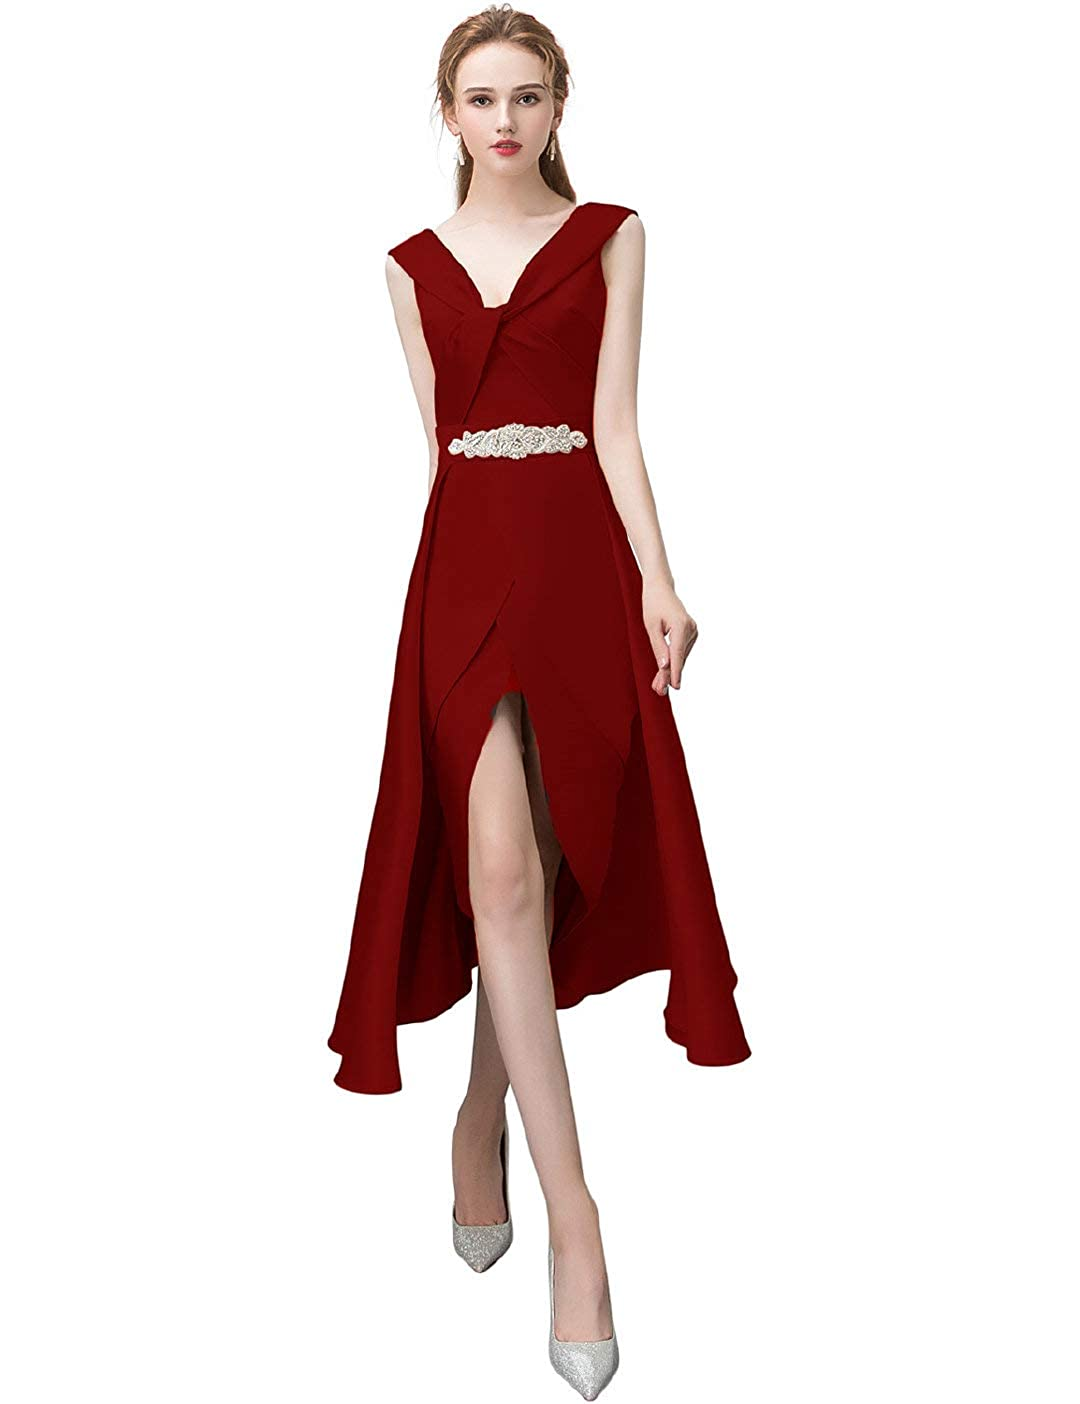 Burgundy Anshirlisa Women's Sleeveless Credver Pleat HighLow Satin Gown Dress